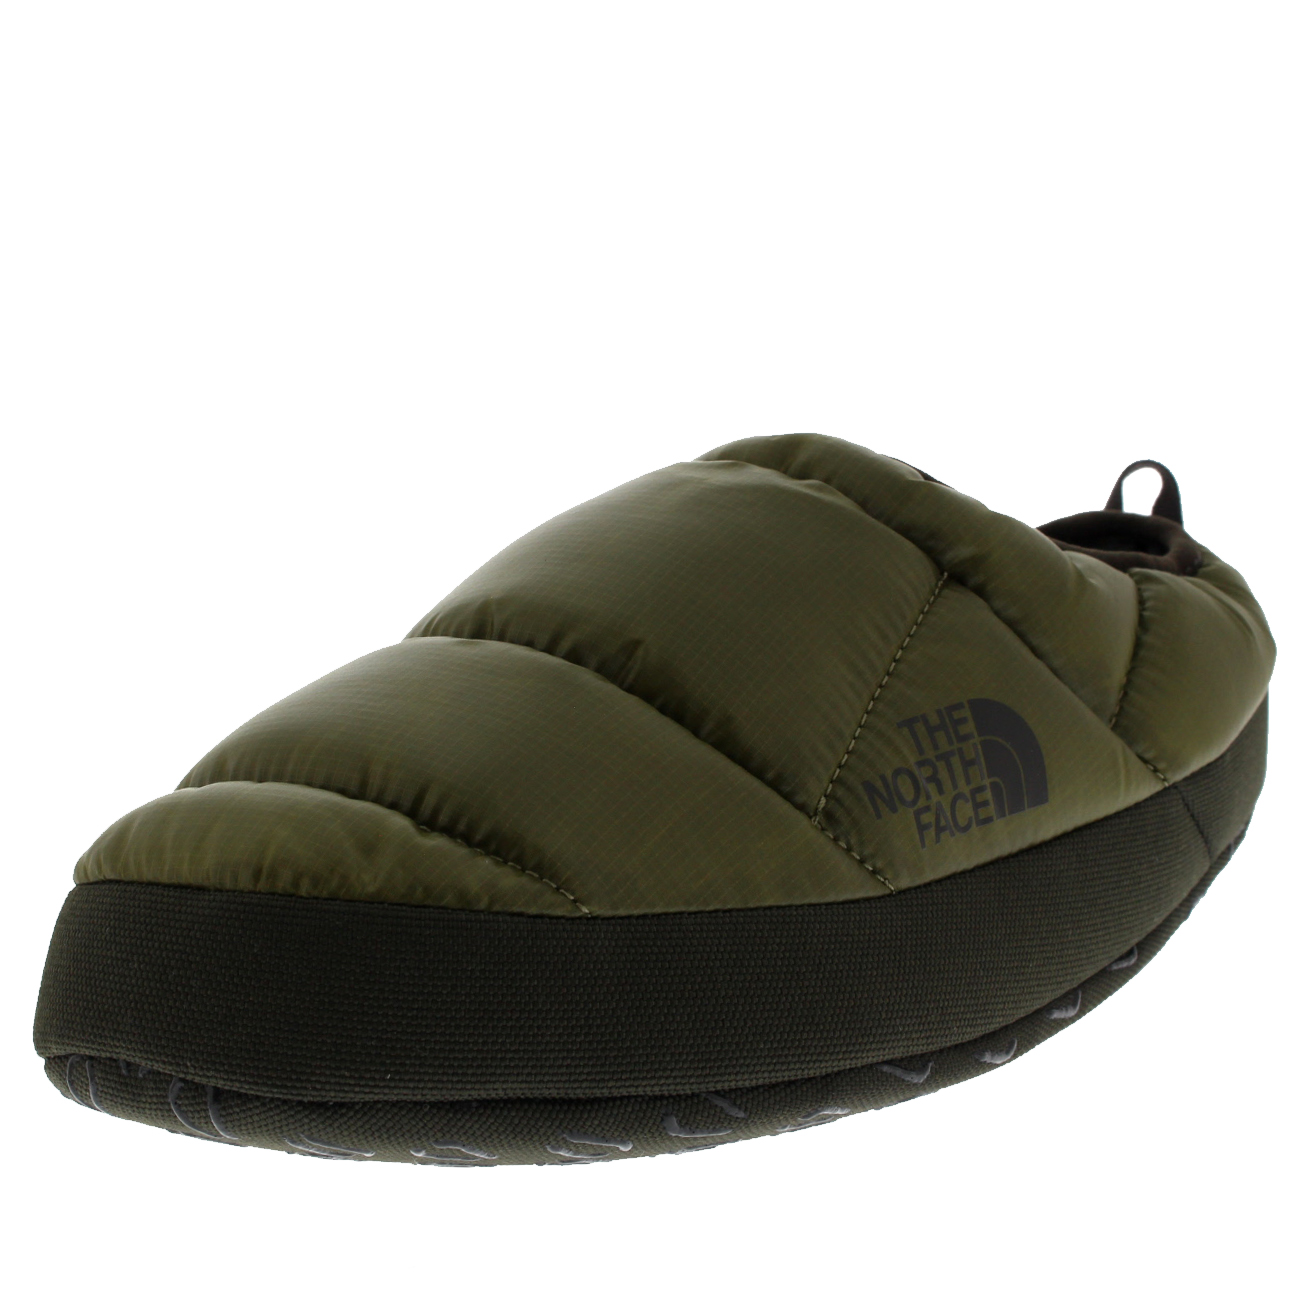 Picture 12 of 23 ...  sc 1 st  eBay & The North Face Nse Tent Mule III Mens Slip on Shiny Burnt Olive ...